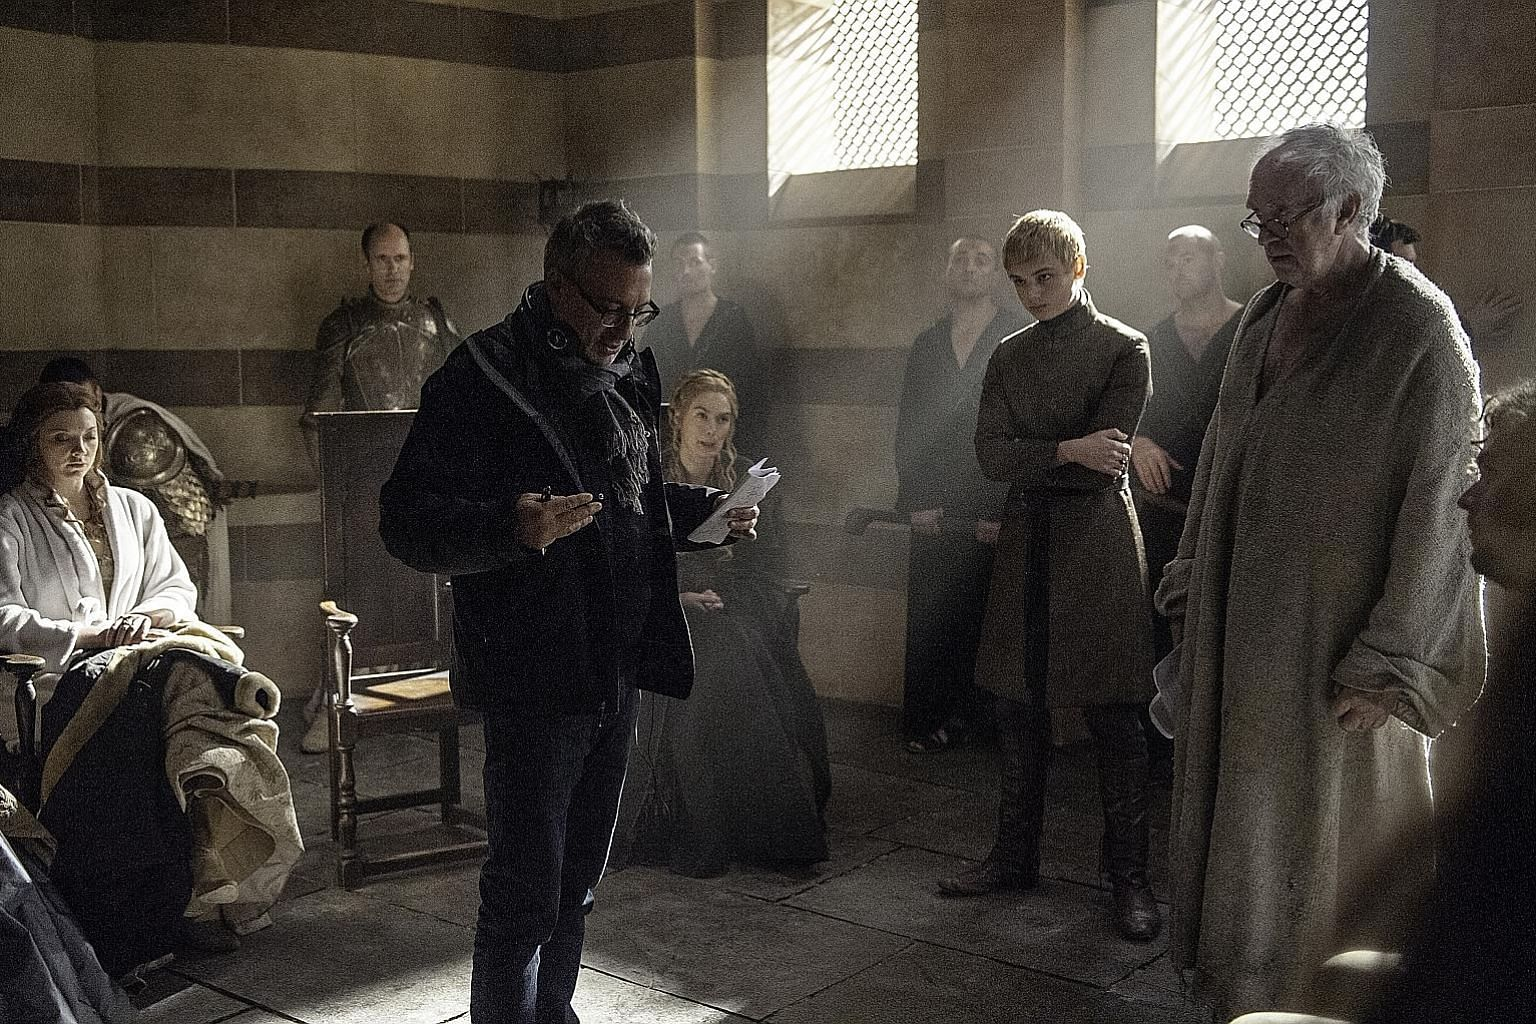 Film-maker Jeremy Podeswa in a scene from Game Of Thrones with actors (seated from far left) Natalie Dormer, Lena Headey, (standing) Dean-Charles Chapman and Jonathan Pryce.